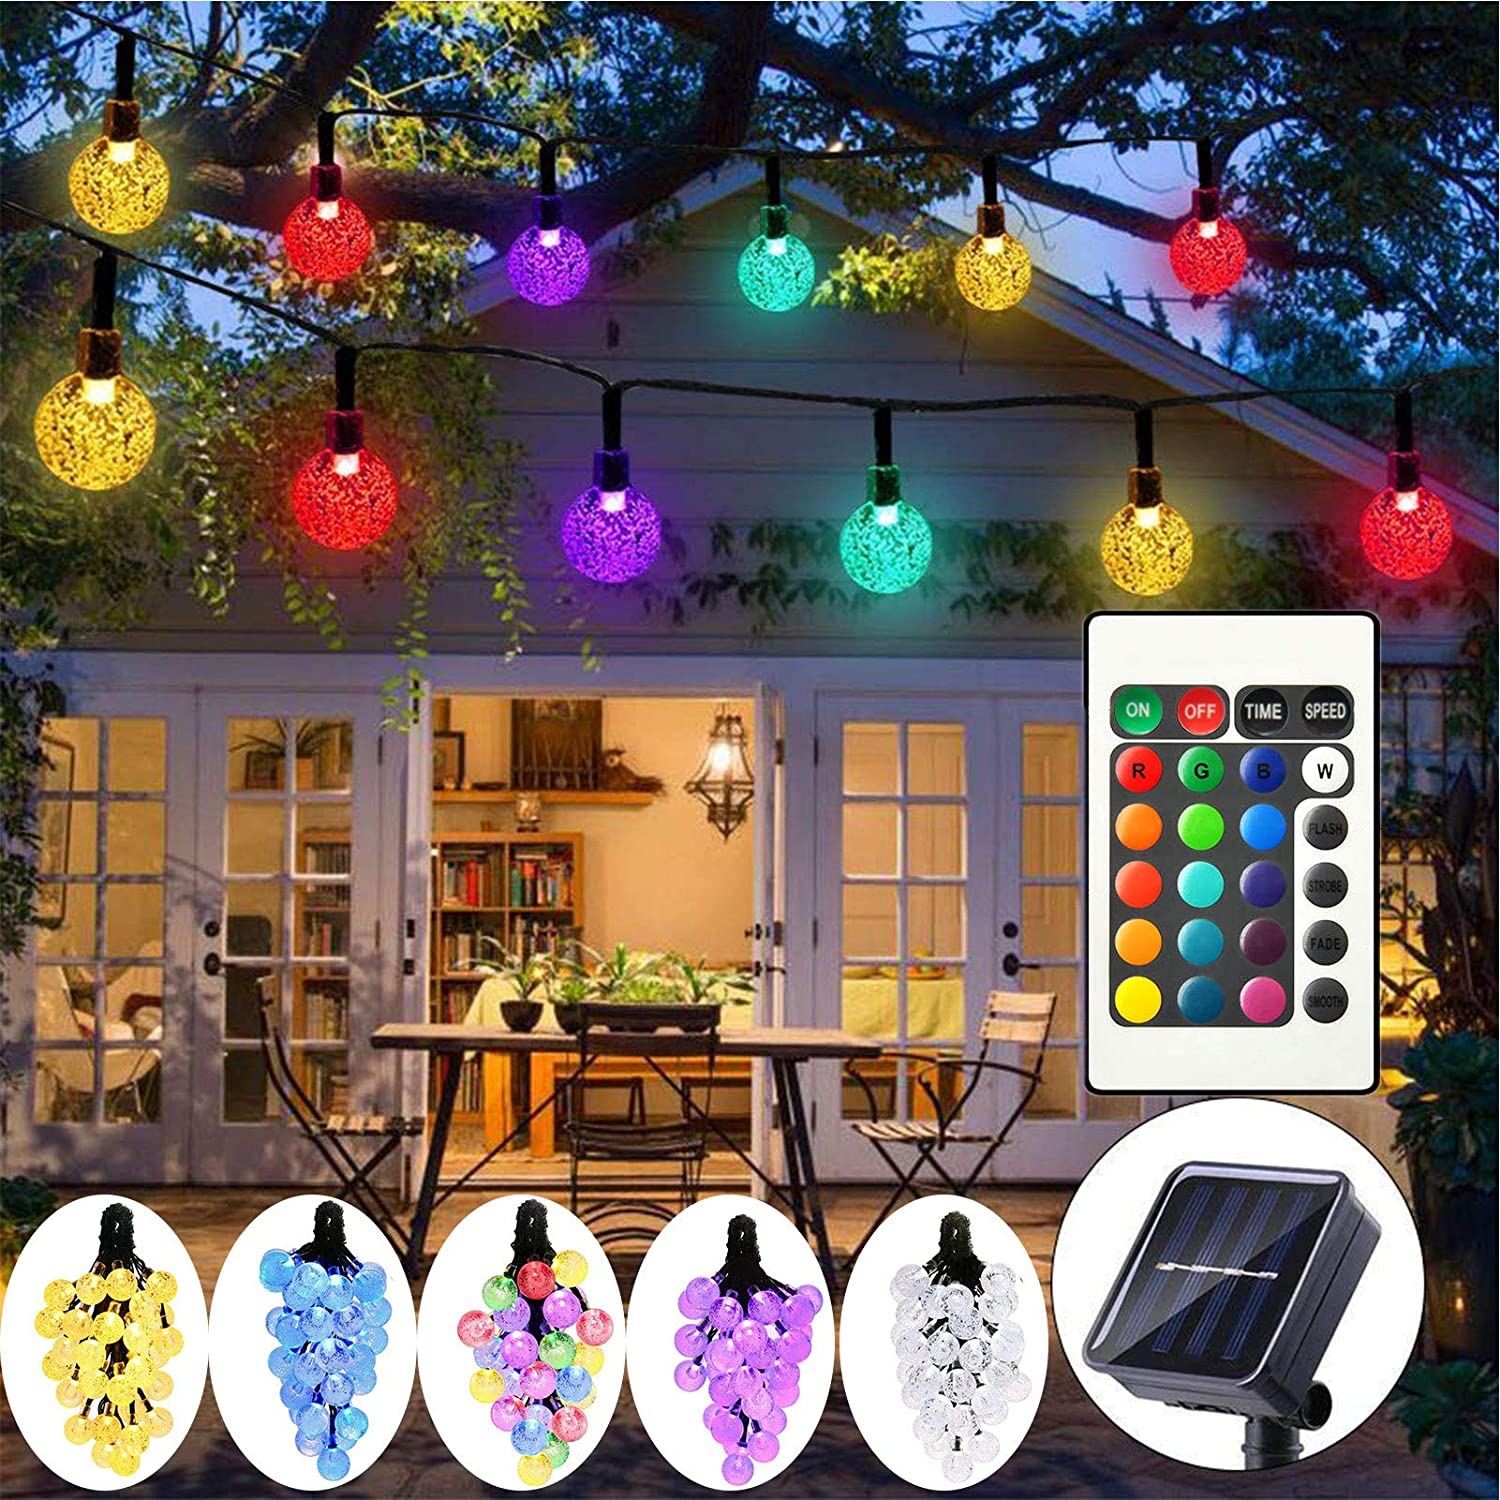 DreiWasser Solar String Lights Garden, 50 LEDs Globe Fairy Light 16 Colors Changing 16.4ft Waterproof Outdoor Crystal Ball Lights with Remote Control for Yard Party Patio Landscape Decoration